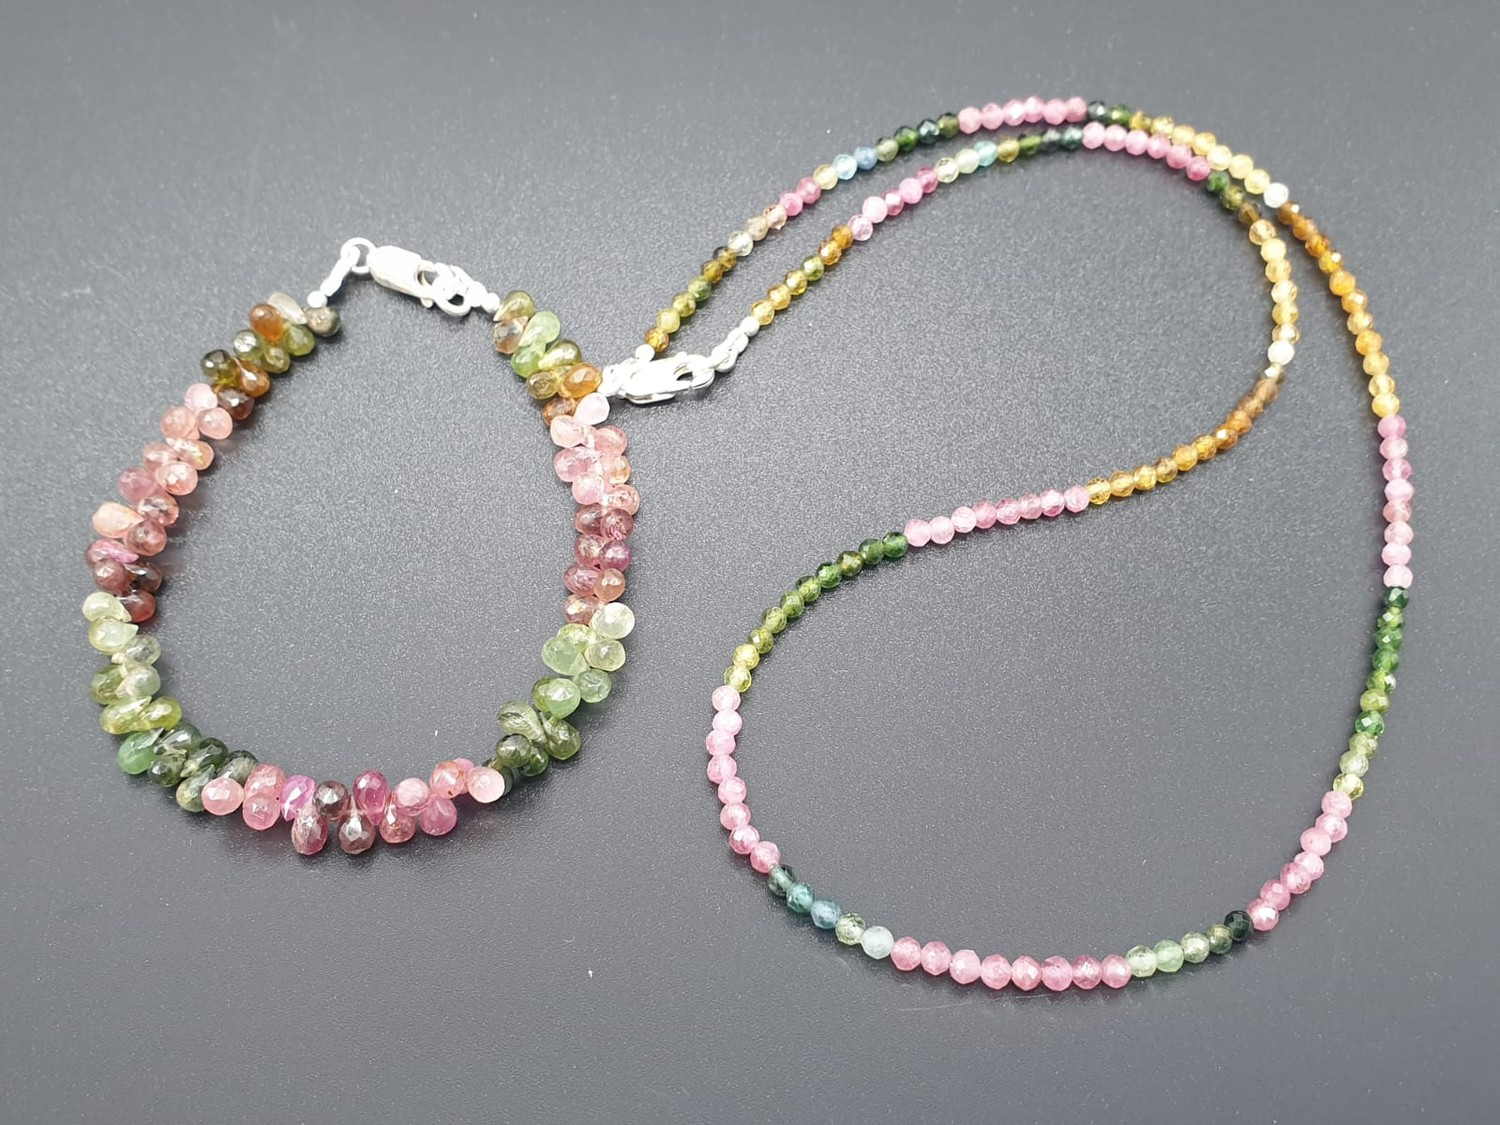 Single Row 3mm Tourmaline Necklace With Matching Tourmaline Drops Bracelet and 925 silver Clasp